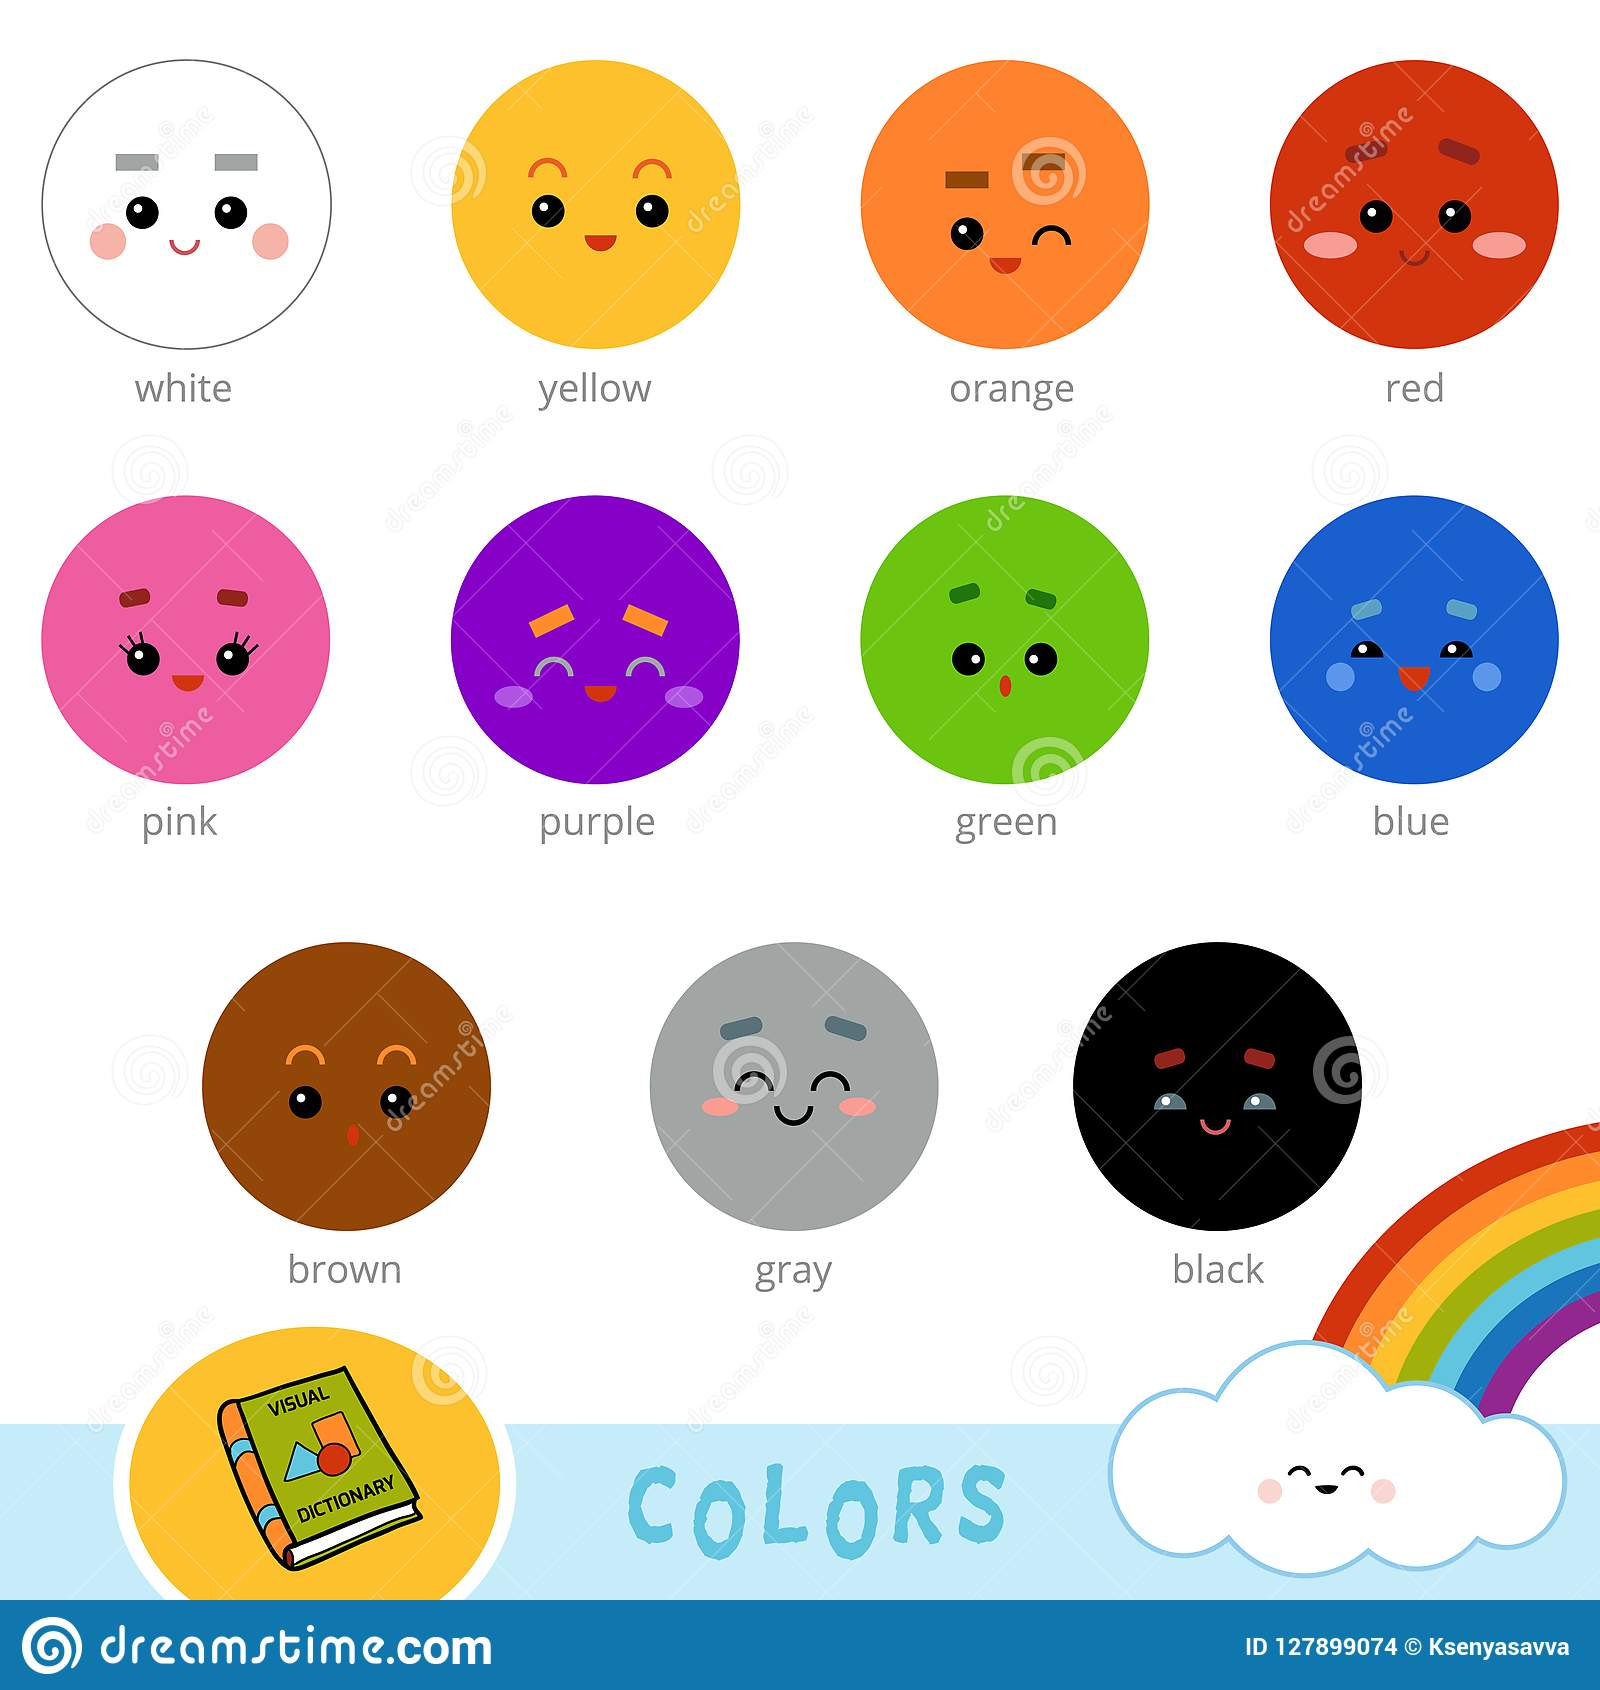 Colorful Set Of Basic Colors Visual Dictionary For